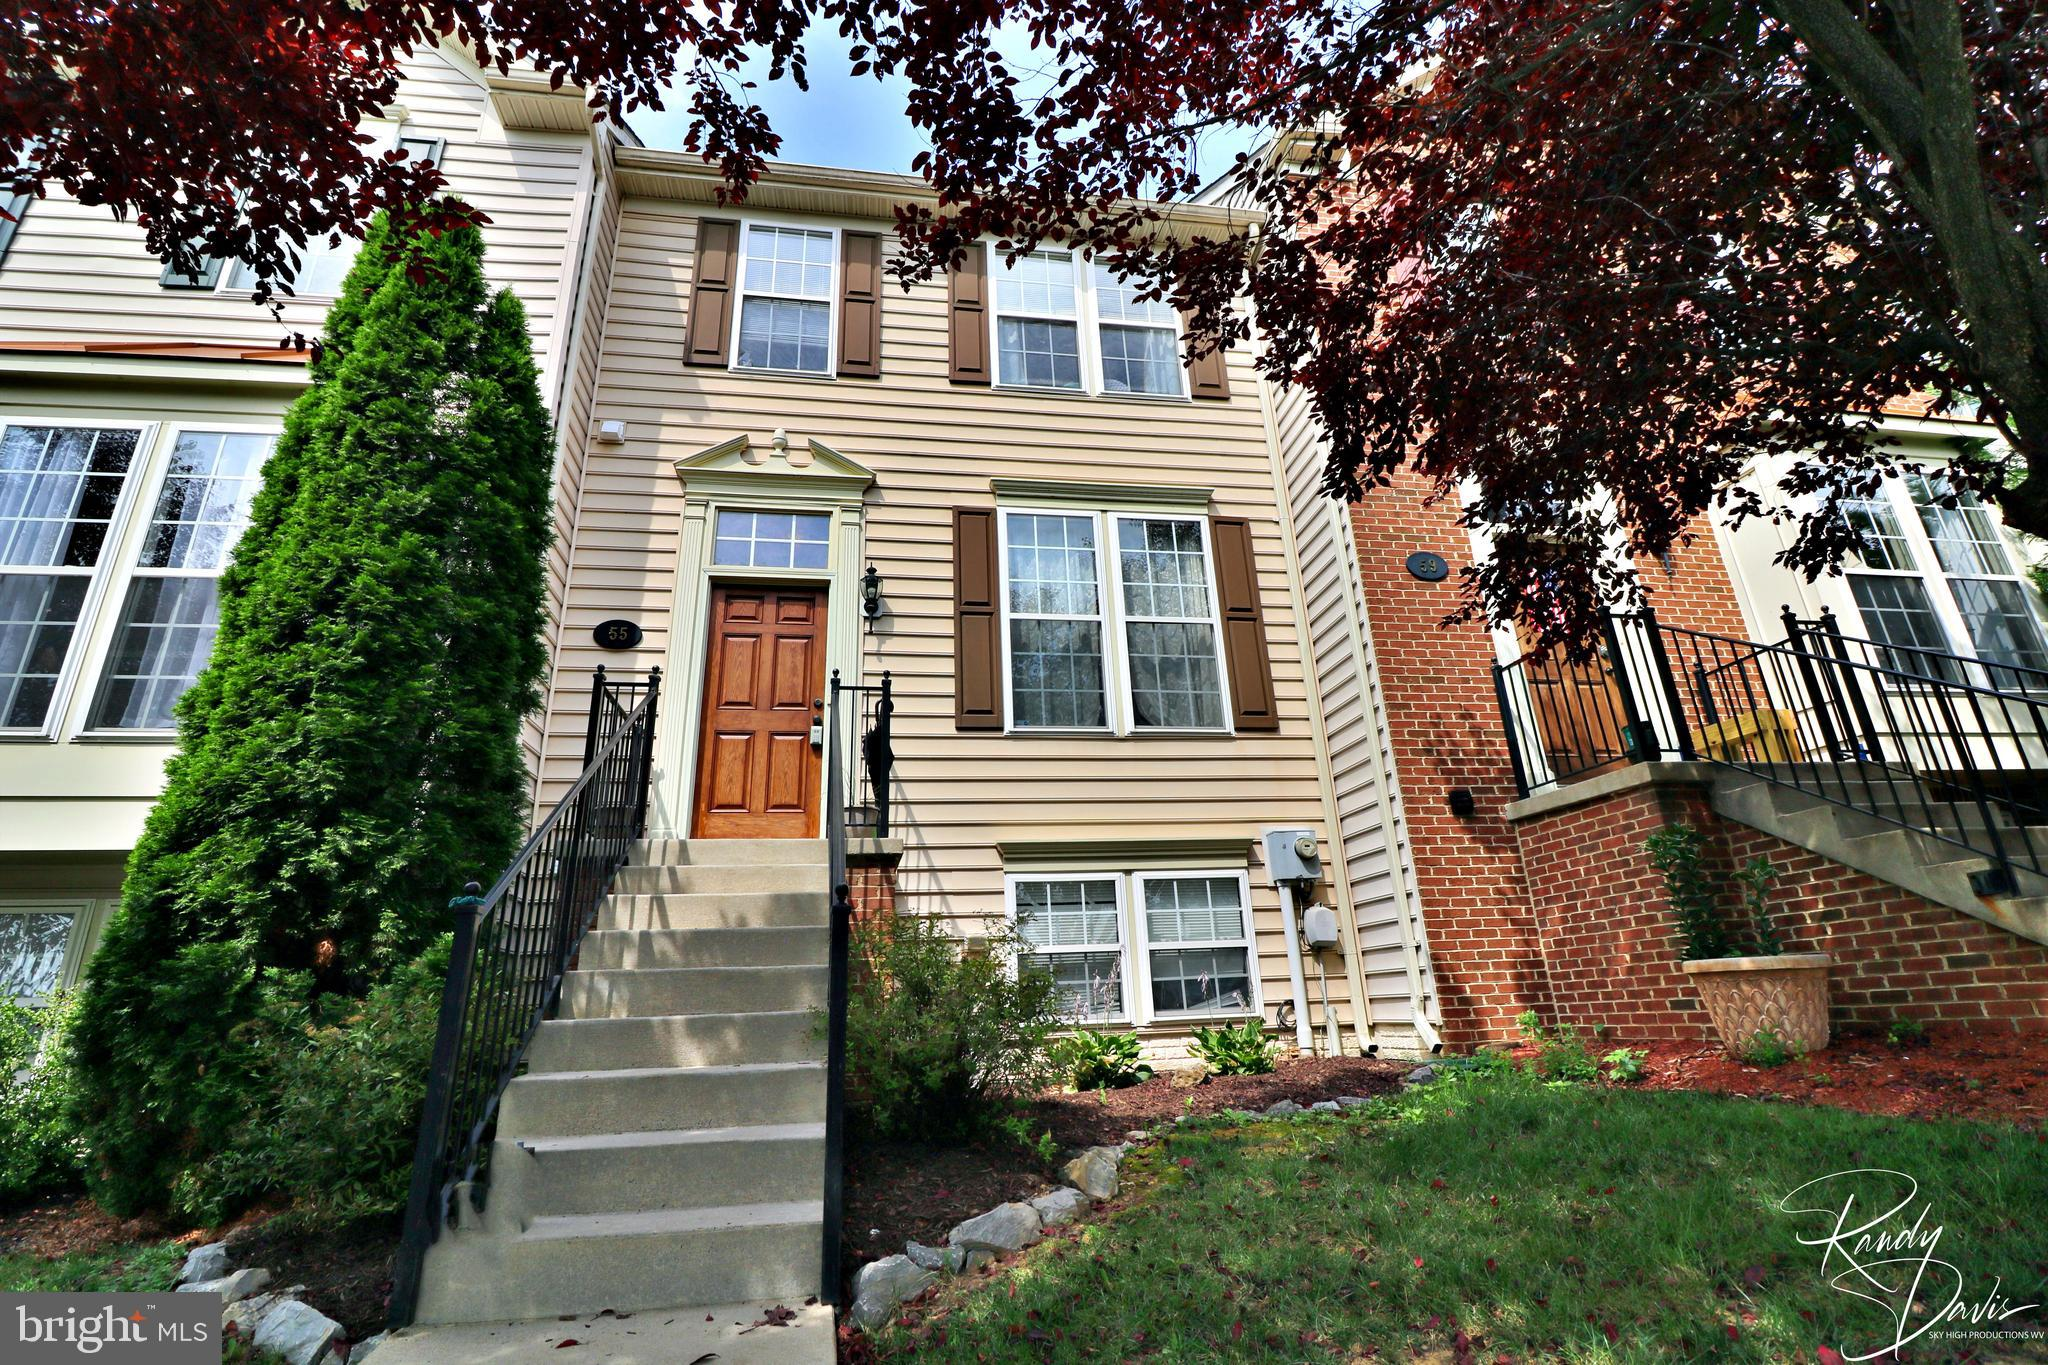 This affordable, low-maintenance townhome in the highly sought-after Shenandoah Springs is ready for